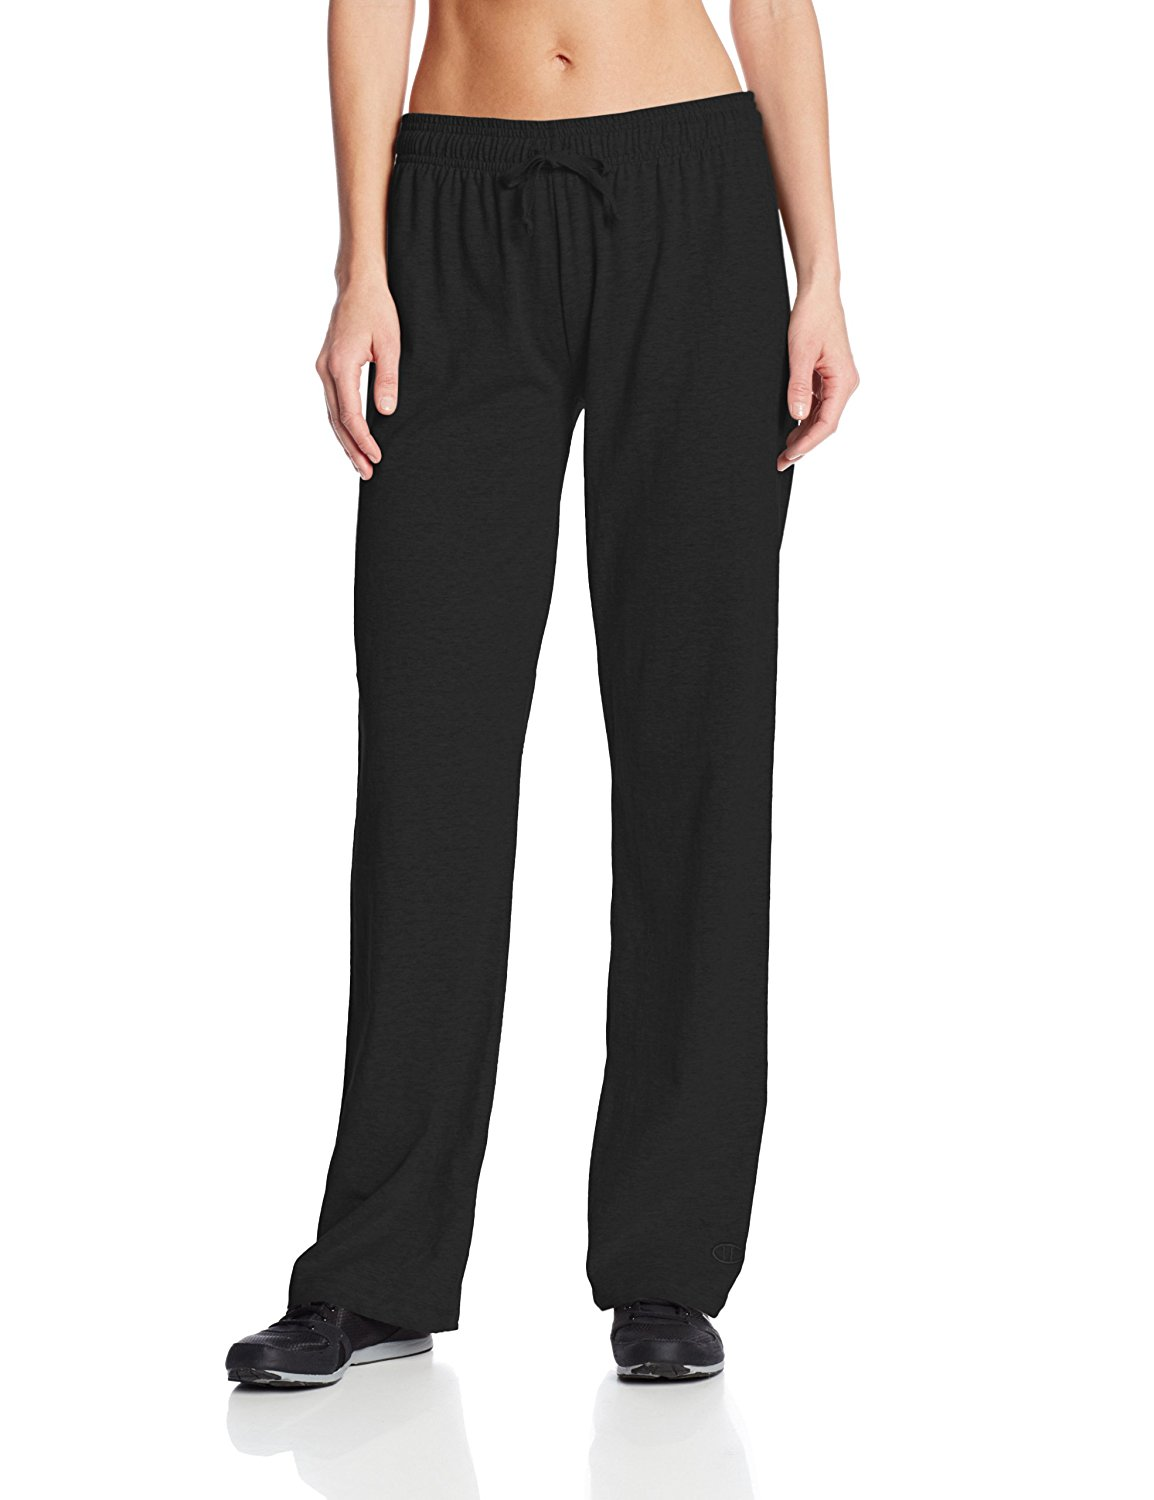 0cf7f3349bdf Details about Champion NEW Deep Black Womens Size 2XL Plus Jersey Stretch  Pants  30- 209